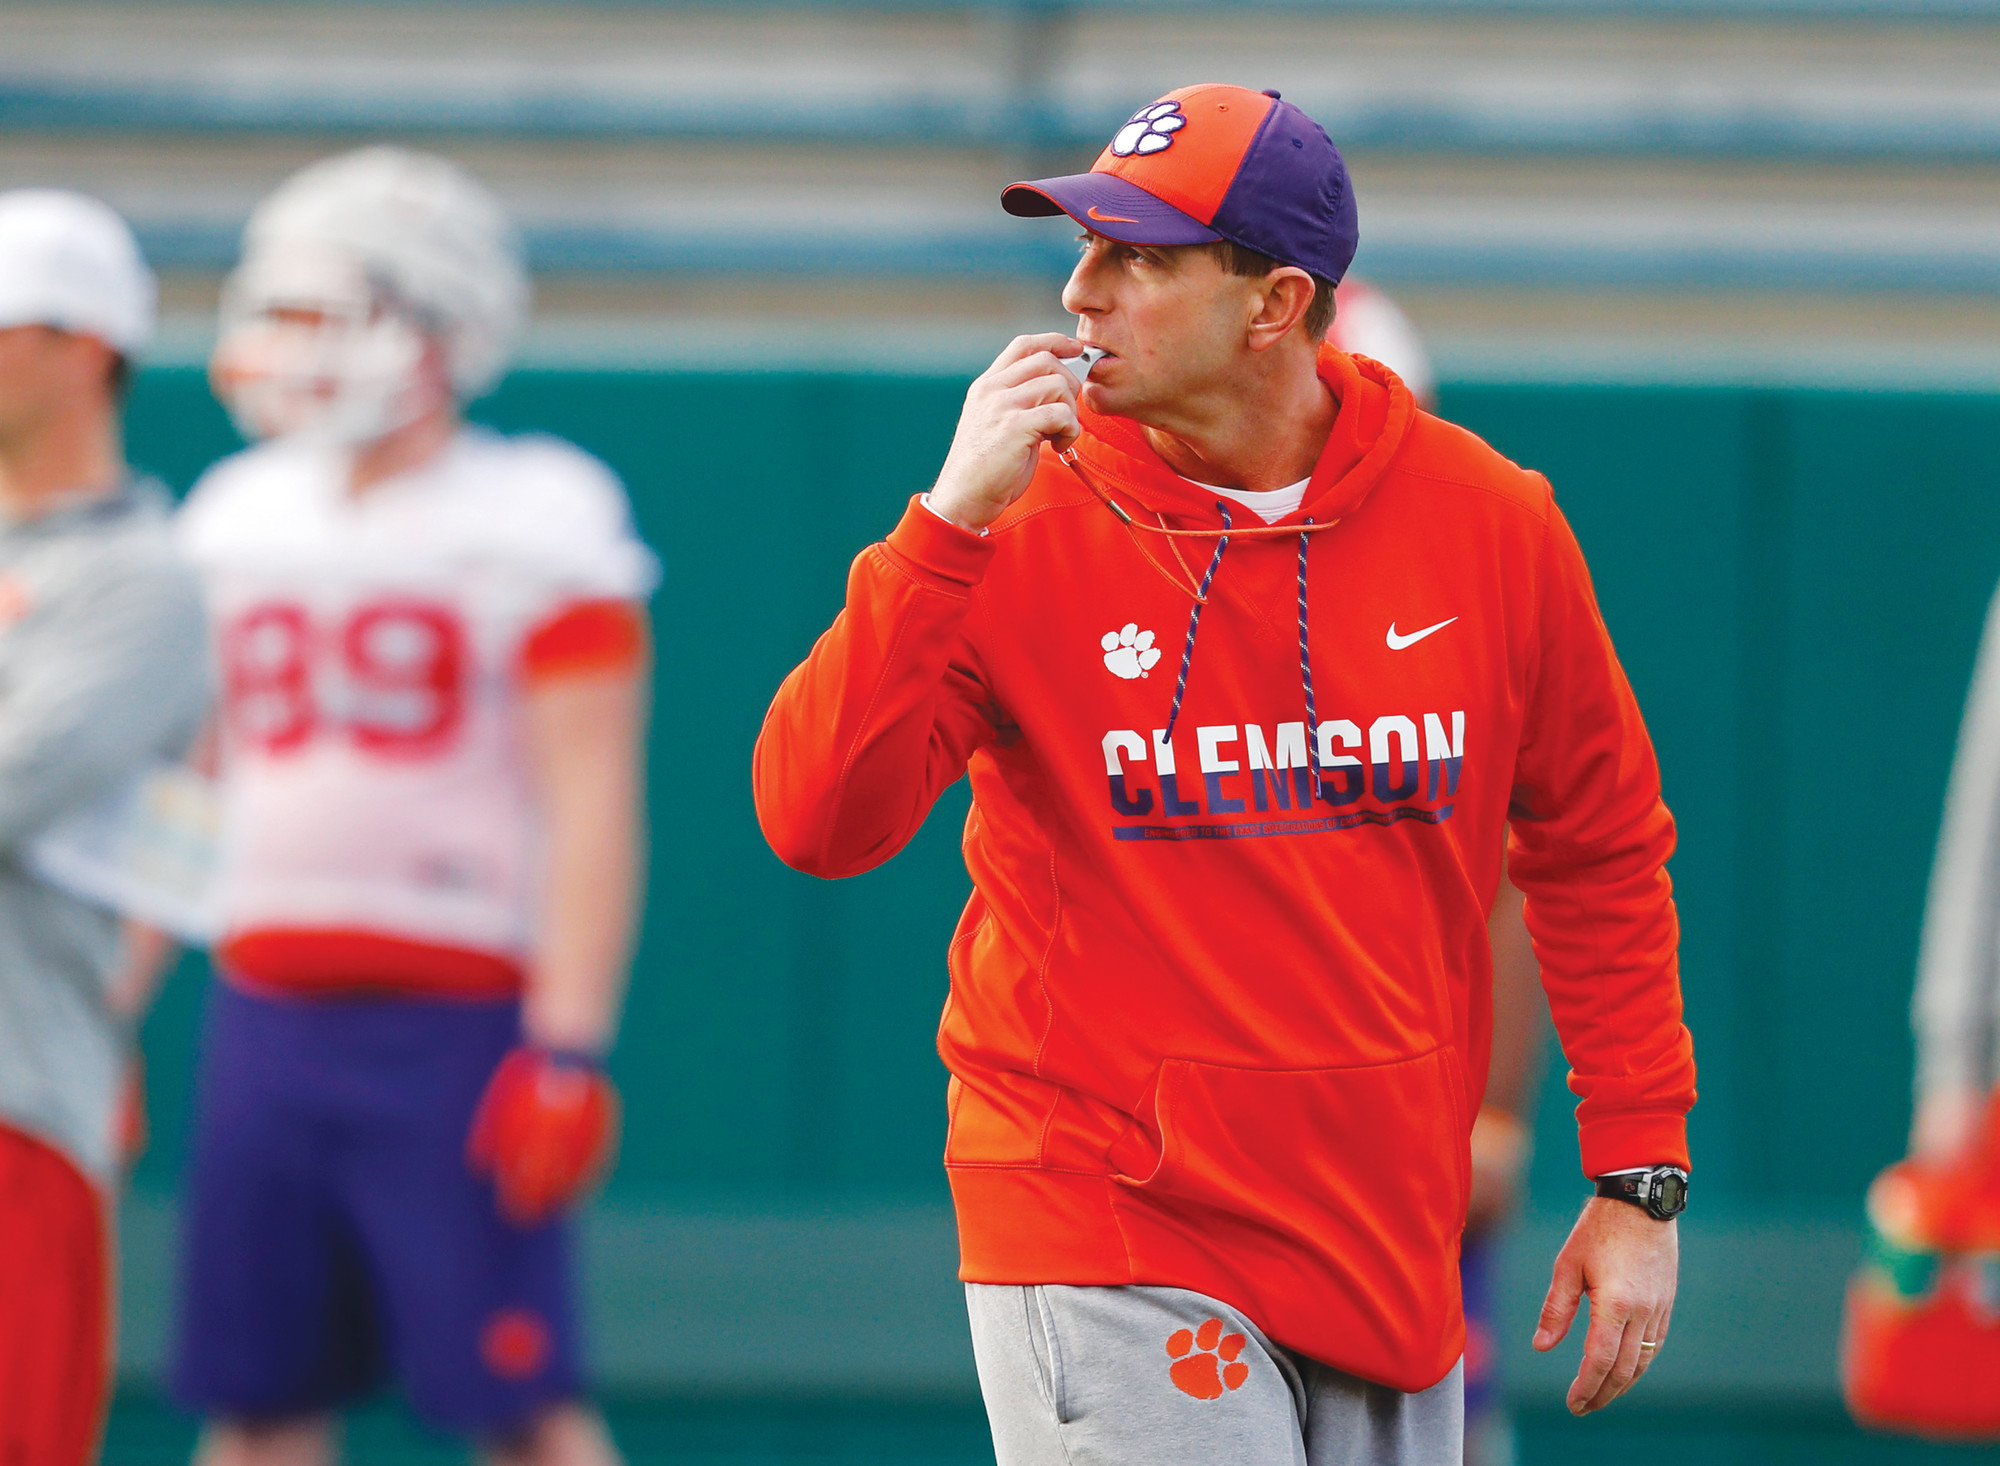 AP FILE PHOTO  Clemson head coach Dabo Swinney runs practice before the 2017 Sugar Bowl game against Alabama in New Orleans. Swinney's Tigers are the heavy favorite to become the first ACC team to win four straight league titles since Florida State's dominating run through the 1990s.